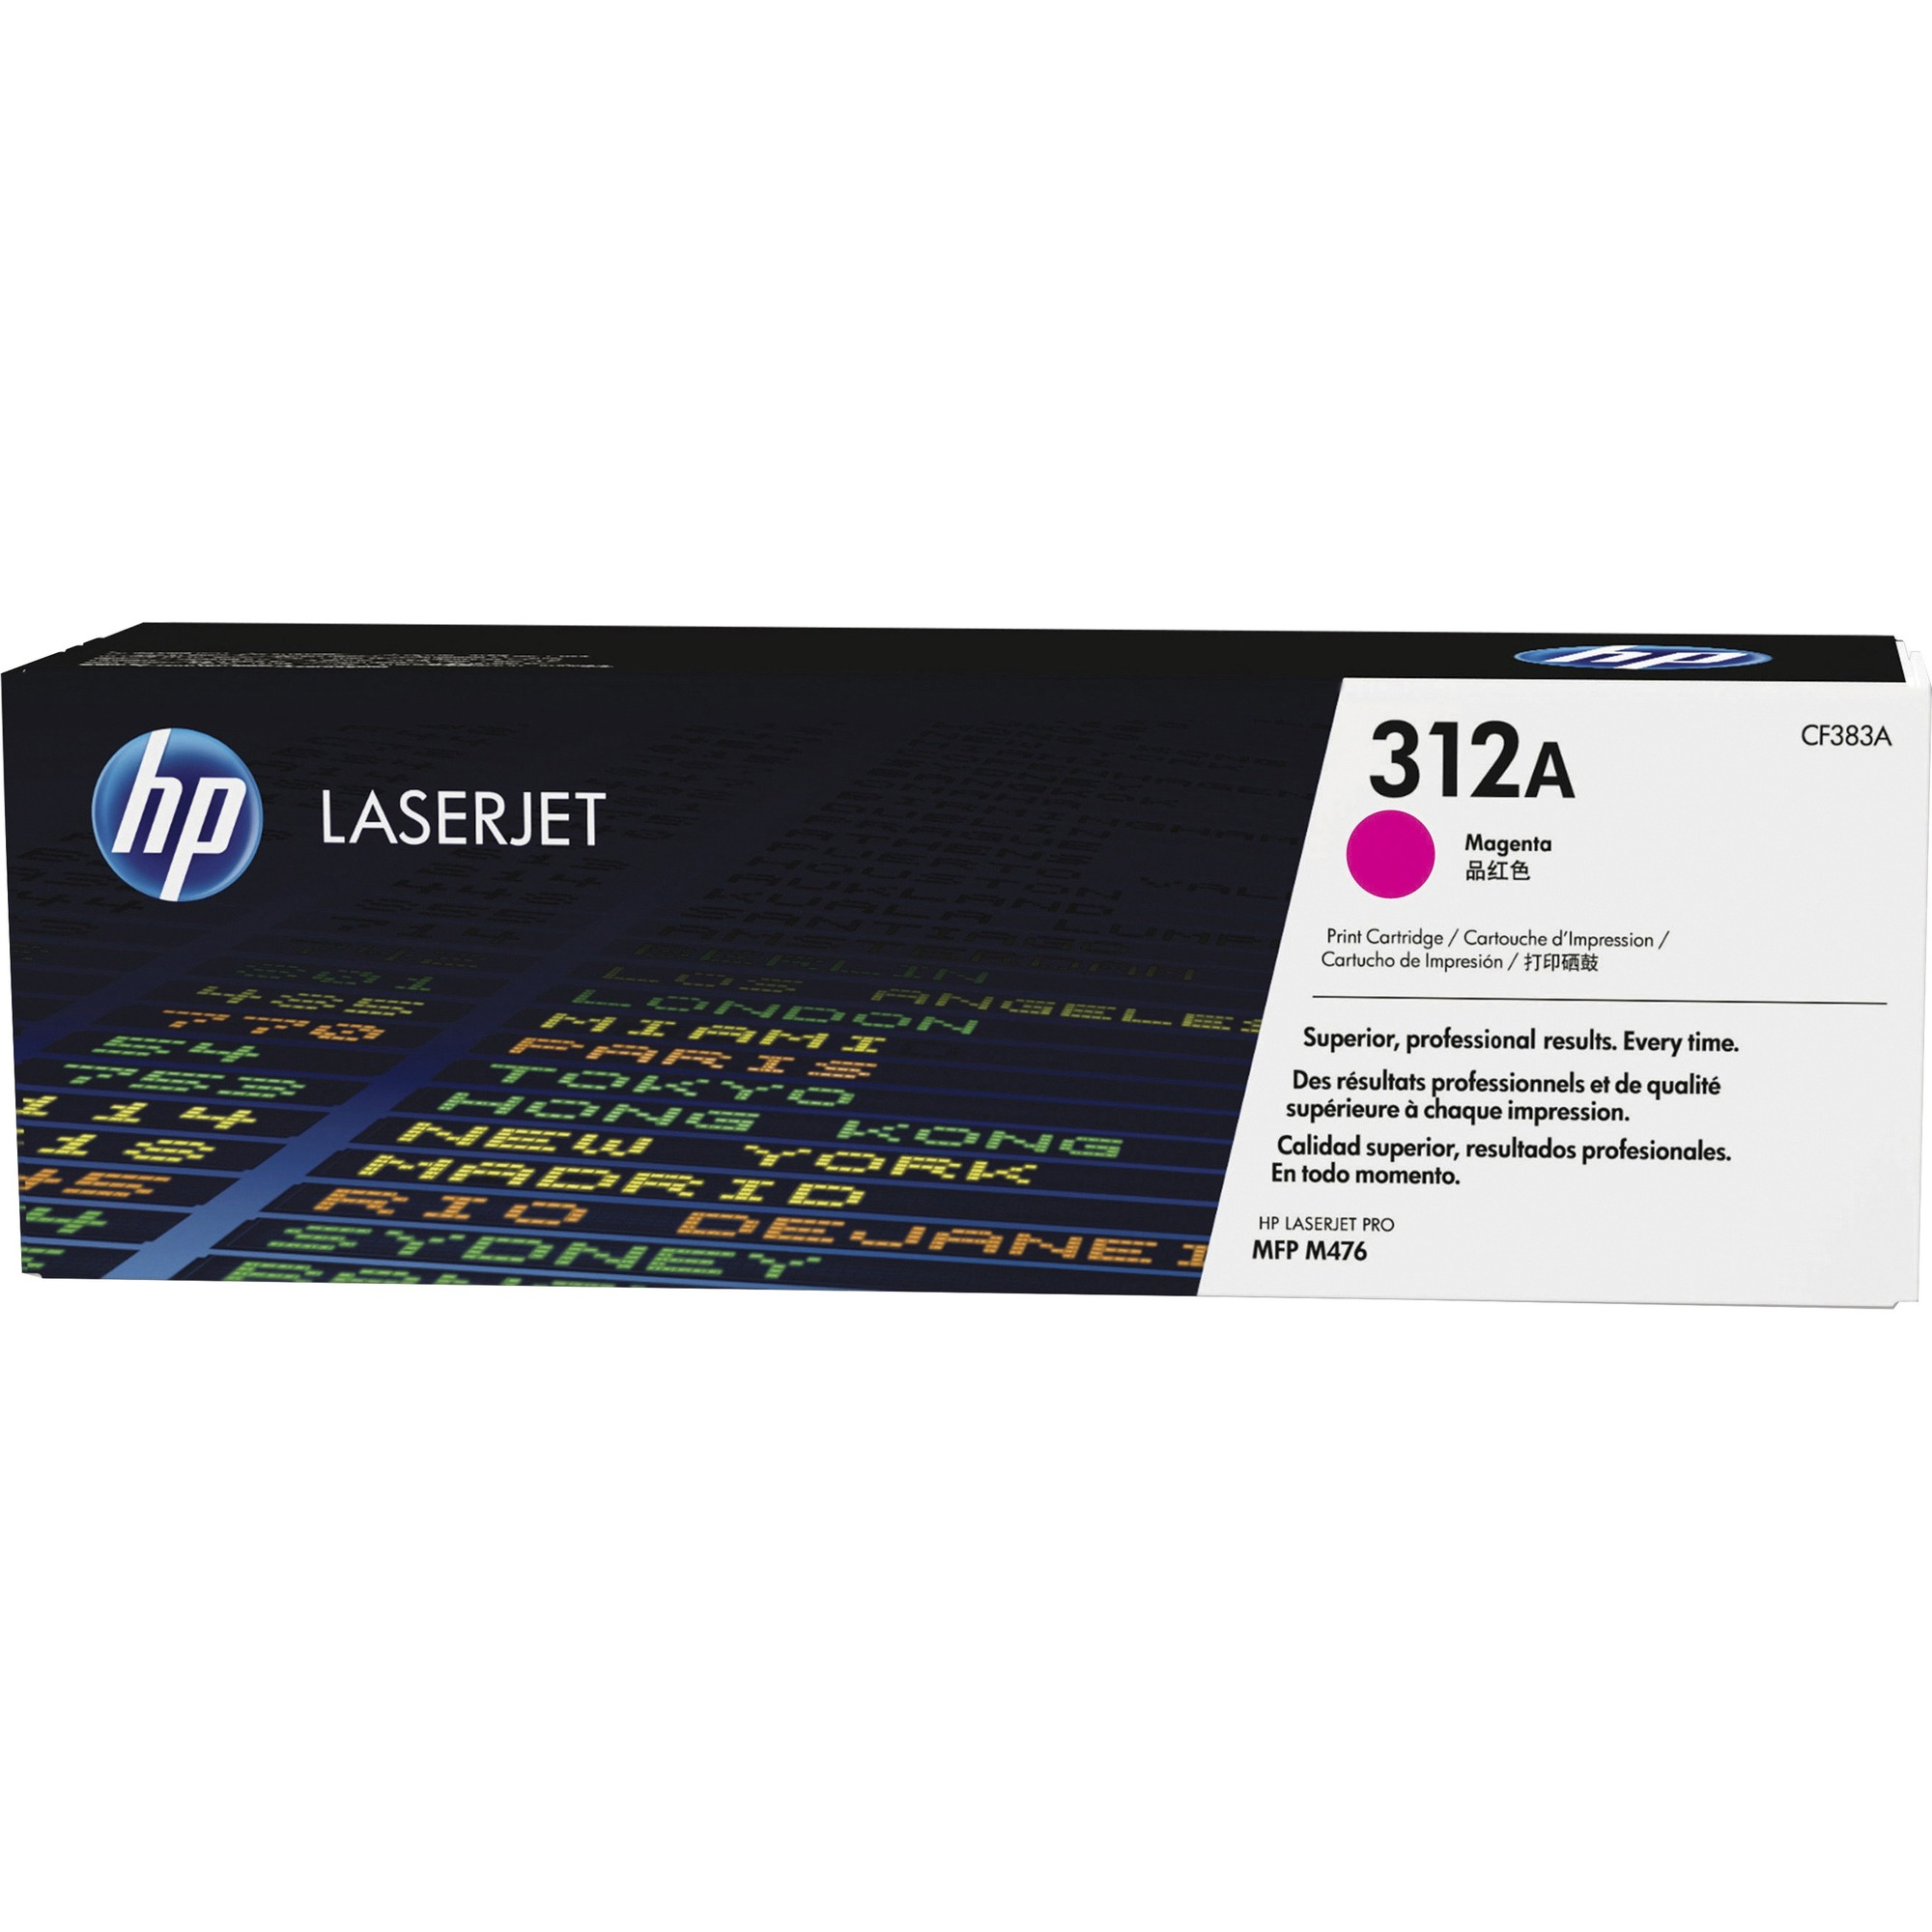 HP 312A Magenta Laser Toner Cartridge